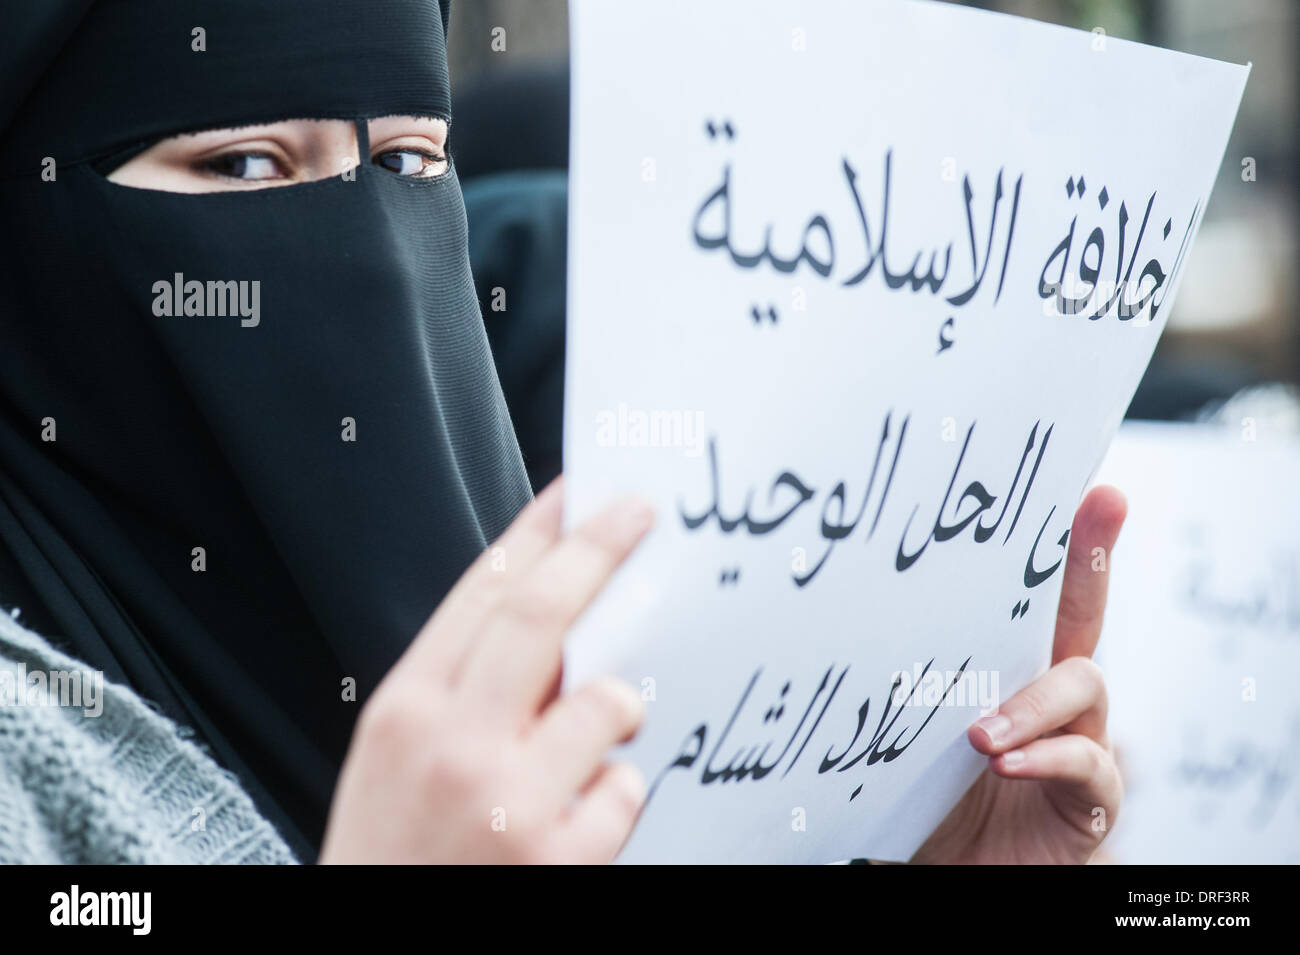 London, UK. 24th January 2014. a protester holds a placard outside the Regents Park Mosque. Credit:  Piero Cruciatti/Alamy Live News - Stock Image